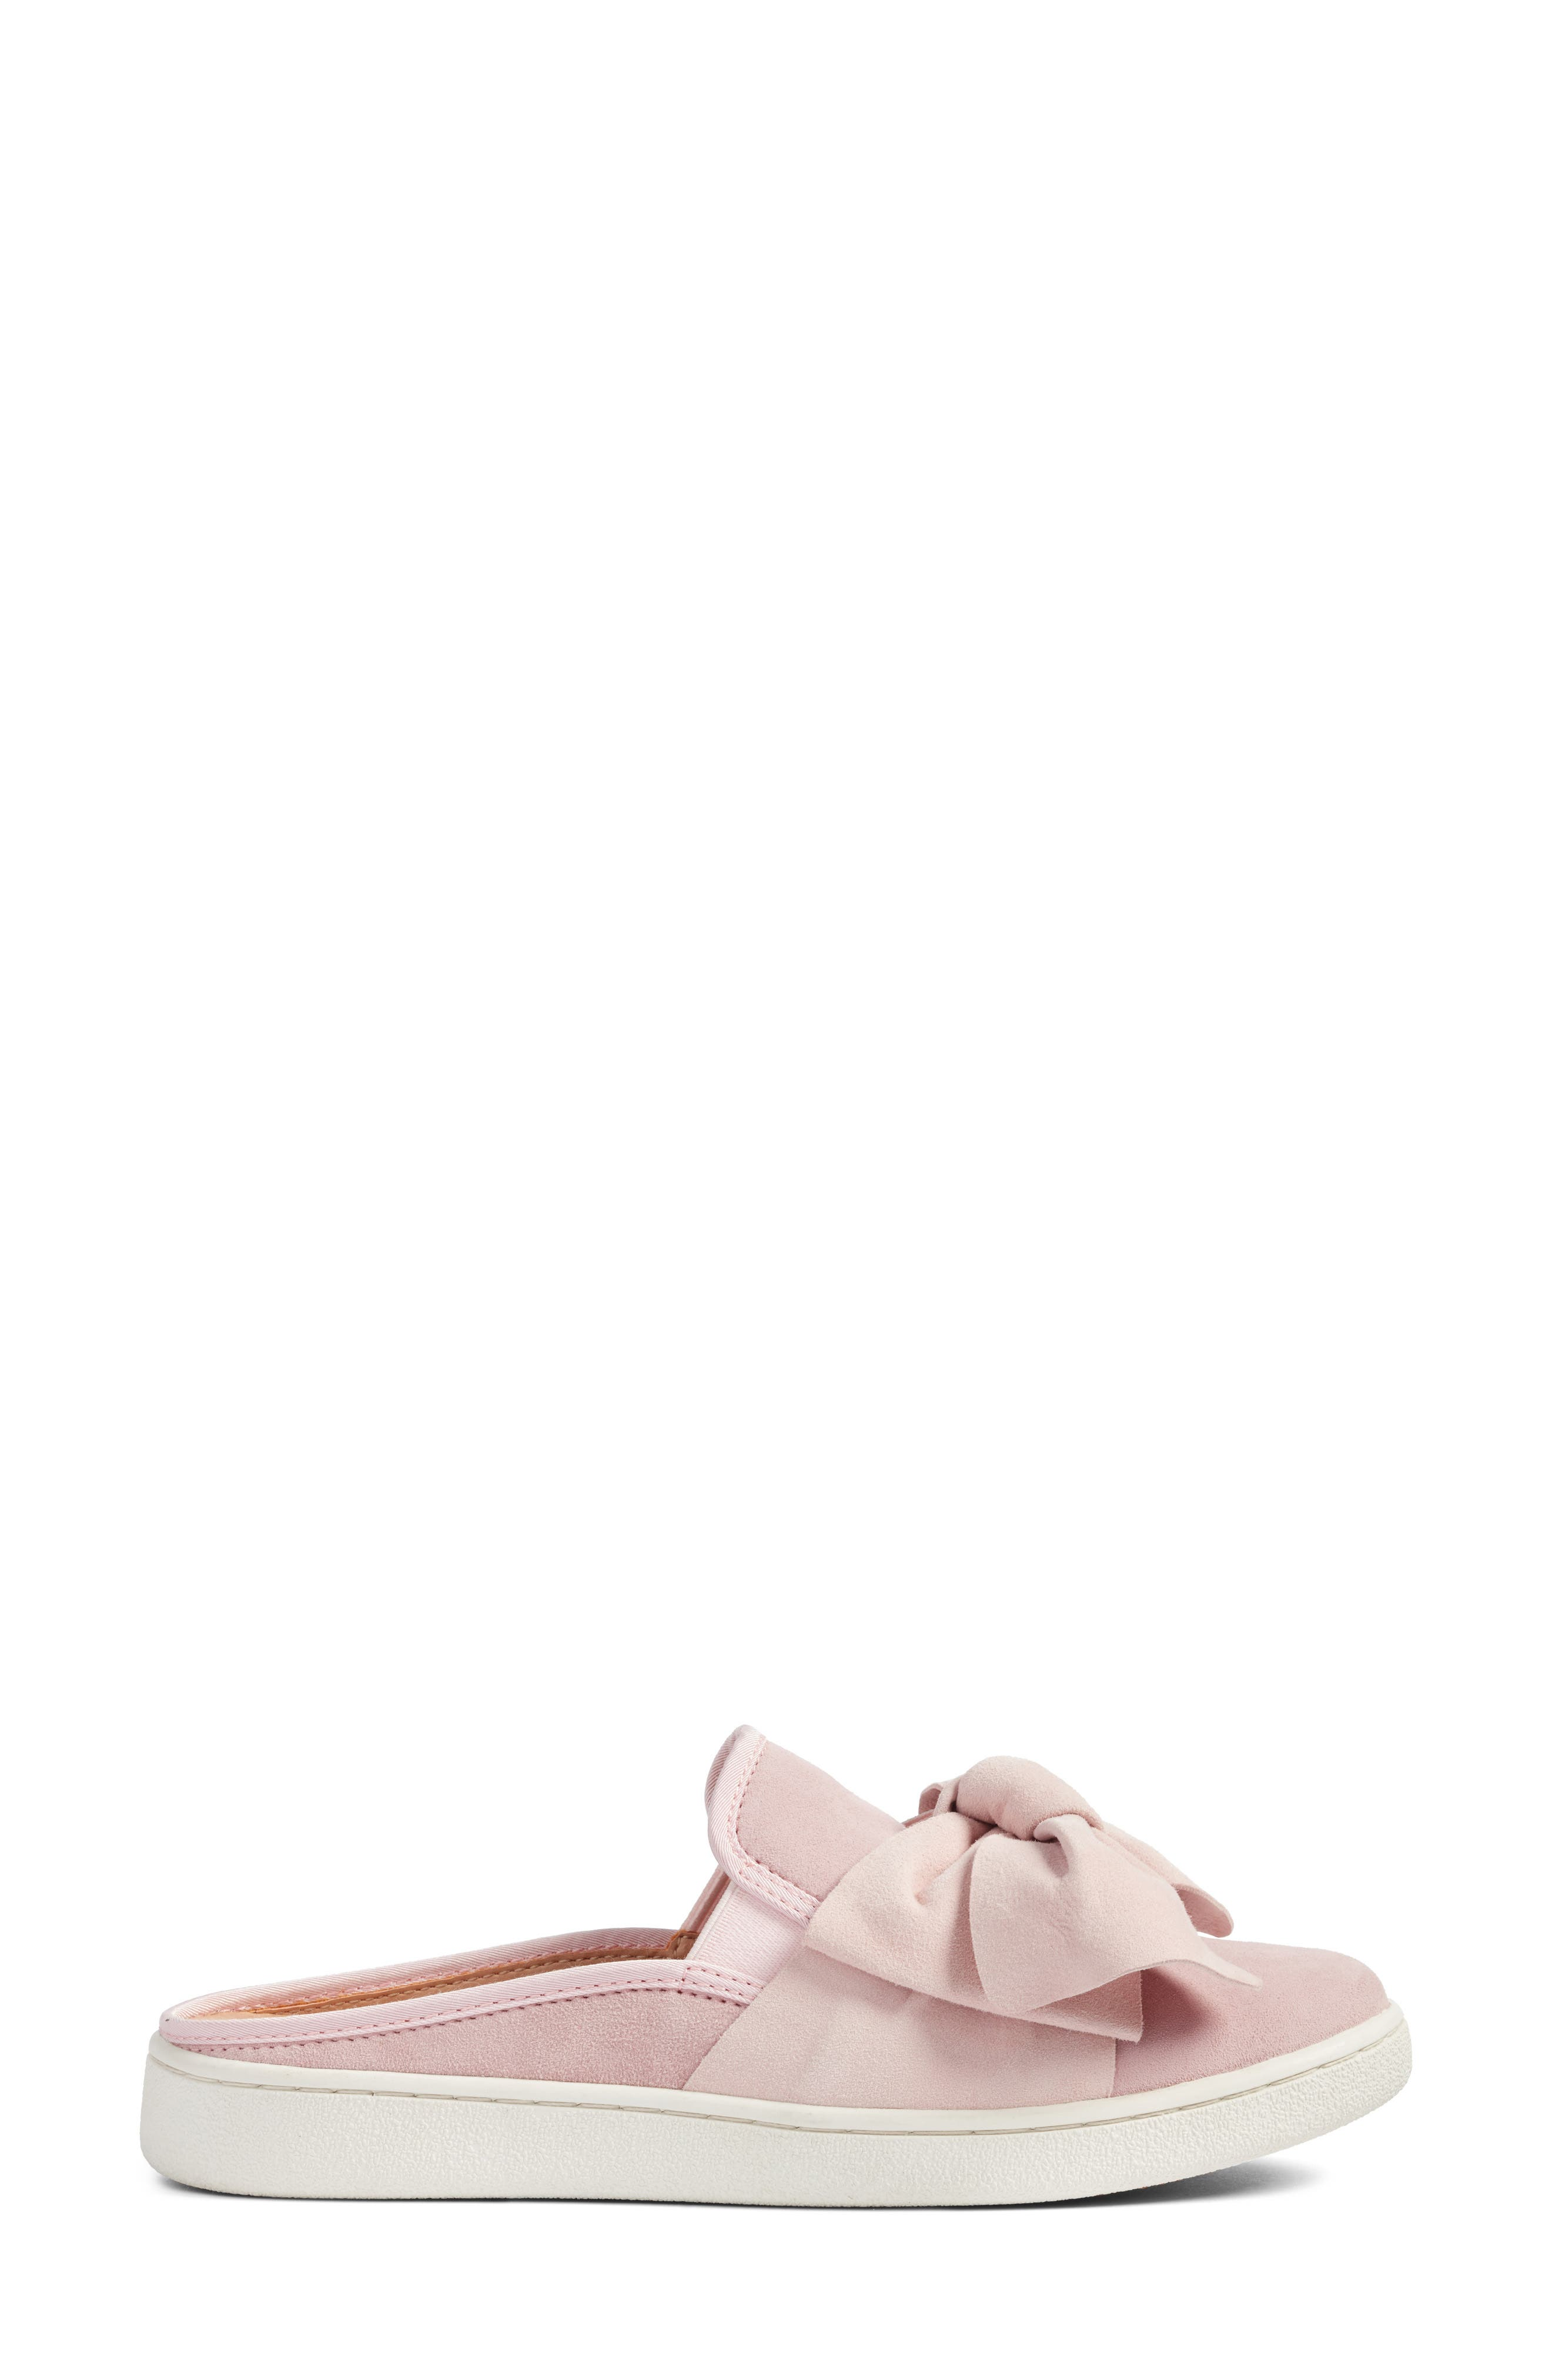 Luci Bow Sneaker Mule,                             Alternate thumbnail 3, color,                             Seashell Pink Suede